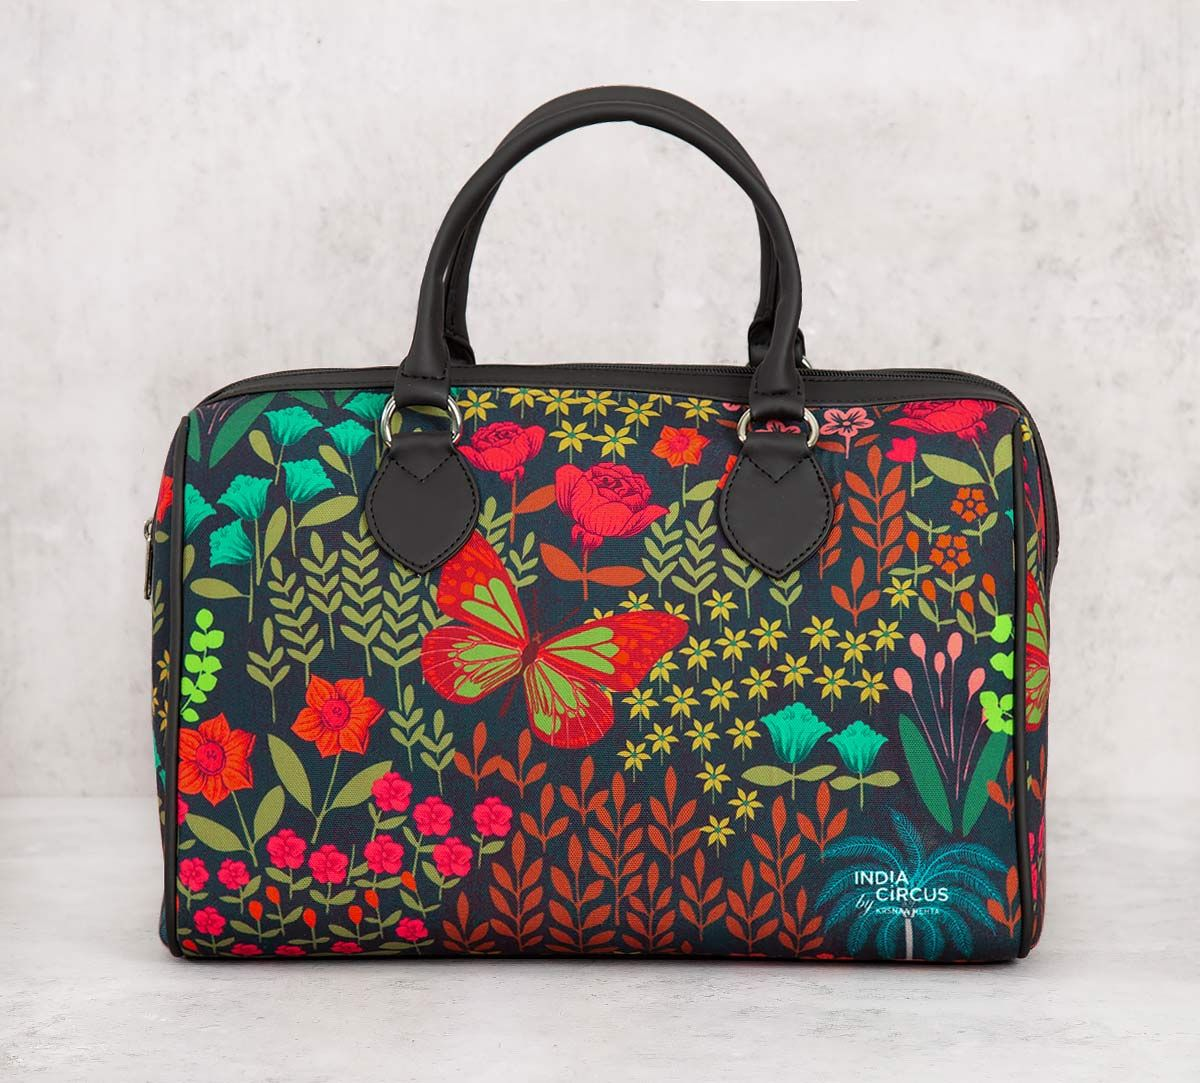 India Circus Mimosa Florals Duffle Bag